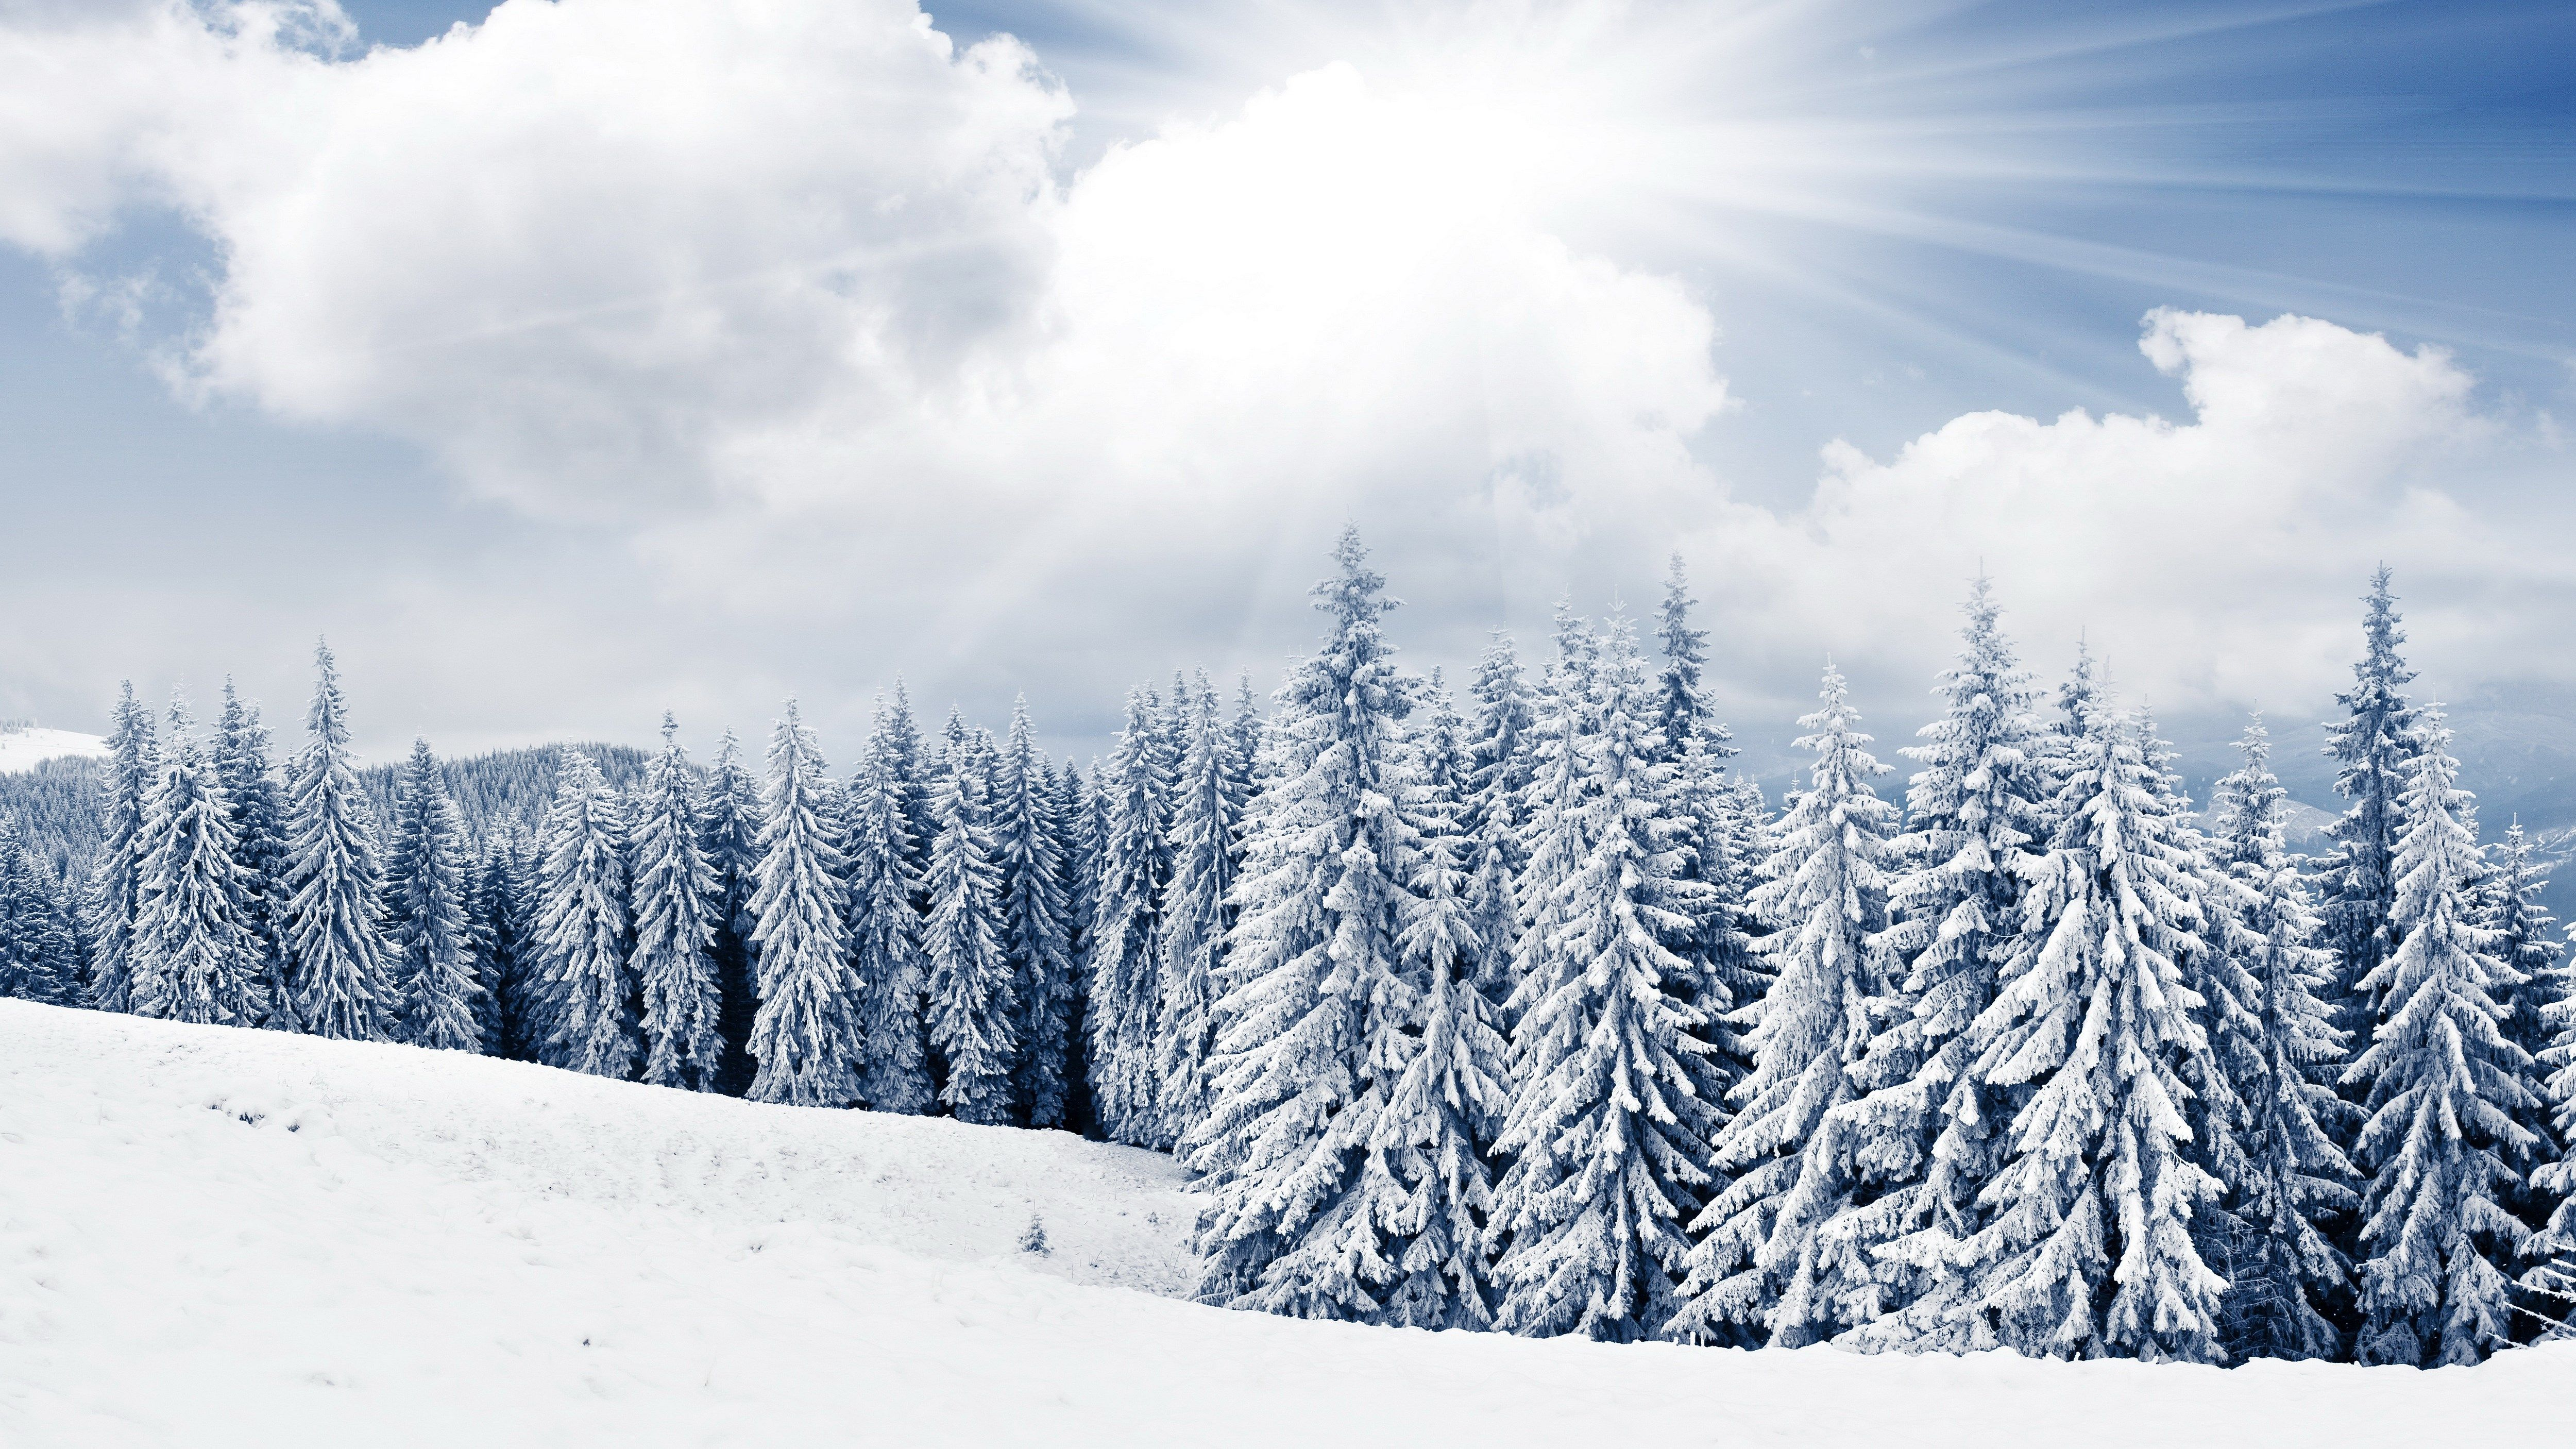 Winter Scenes Desktop Backgrounds Free 5000x2812